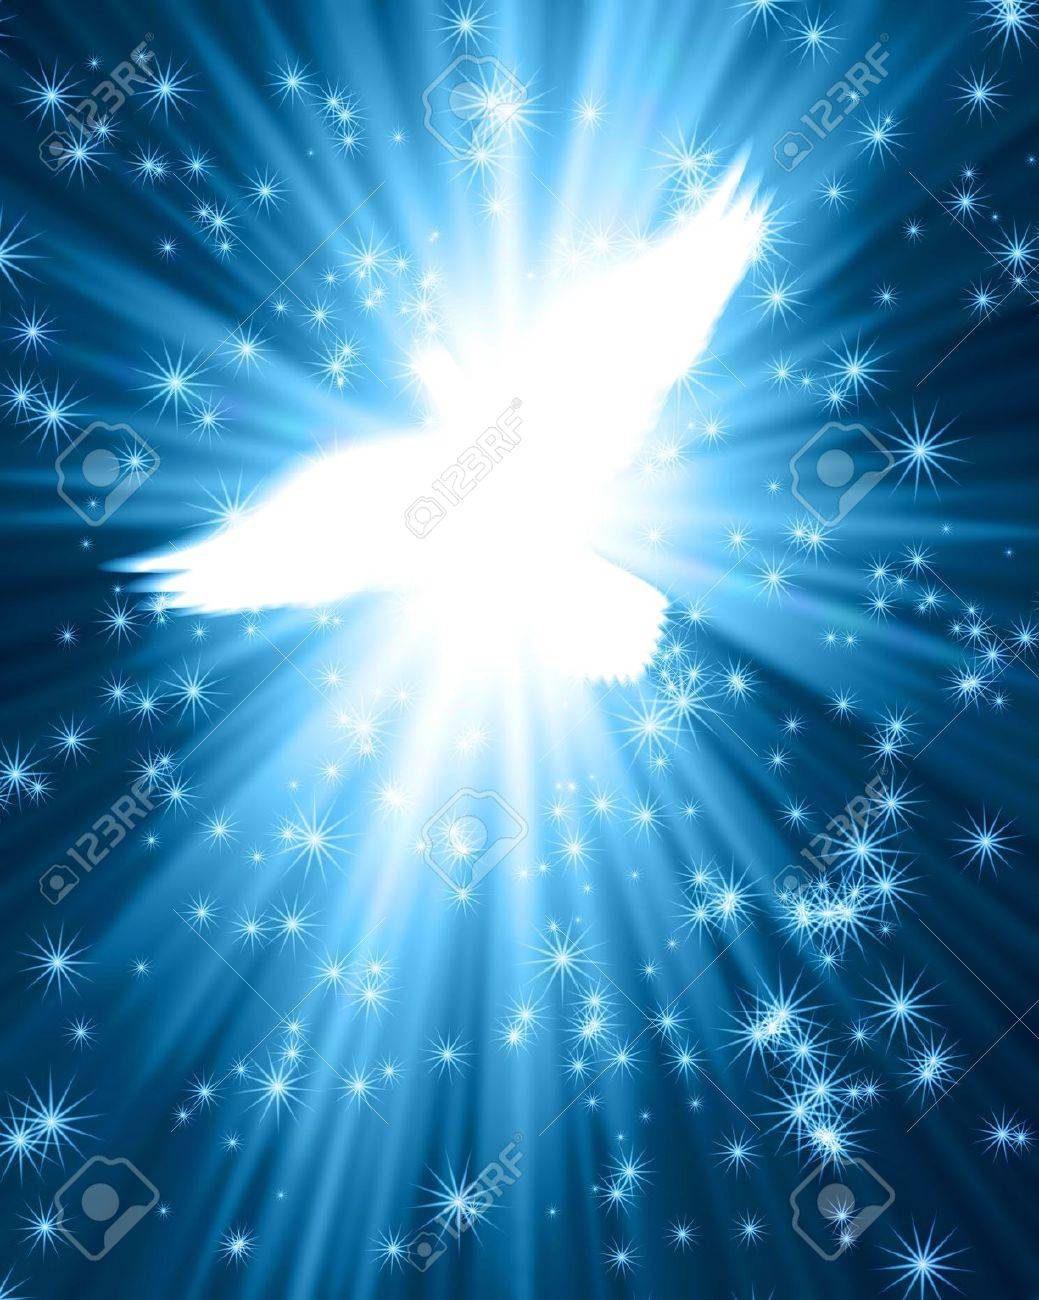 flying dove against glowing background with stars Stock Photo - 12693240